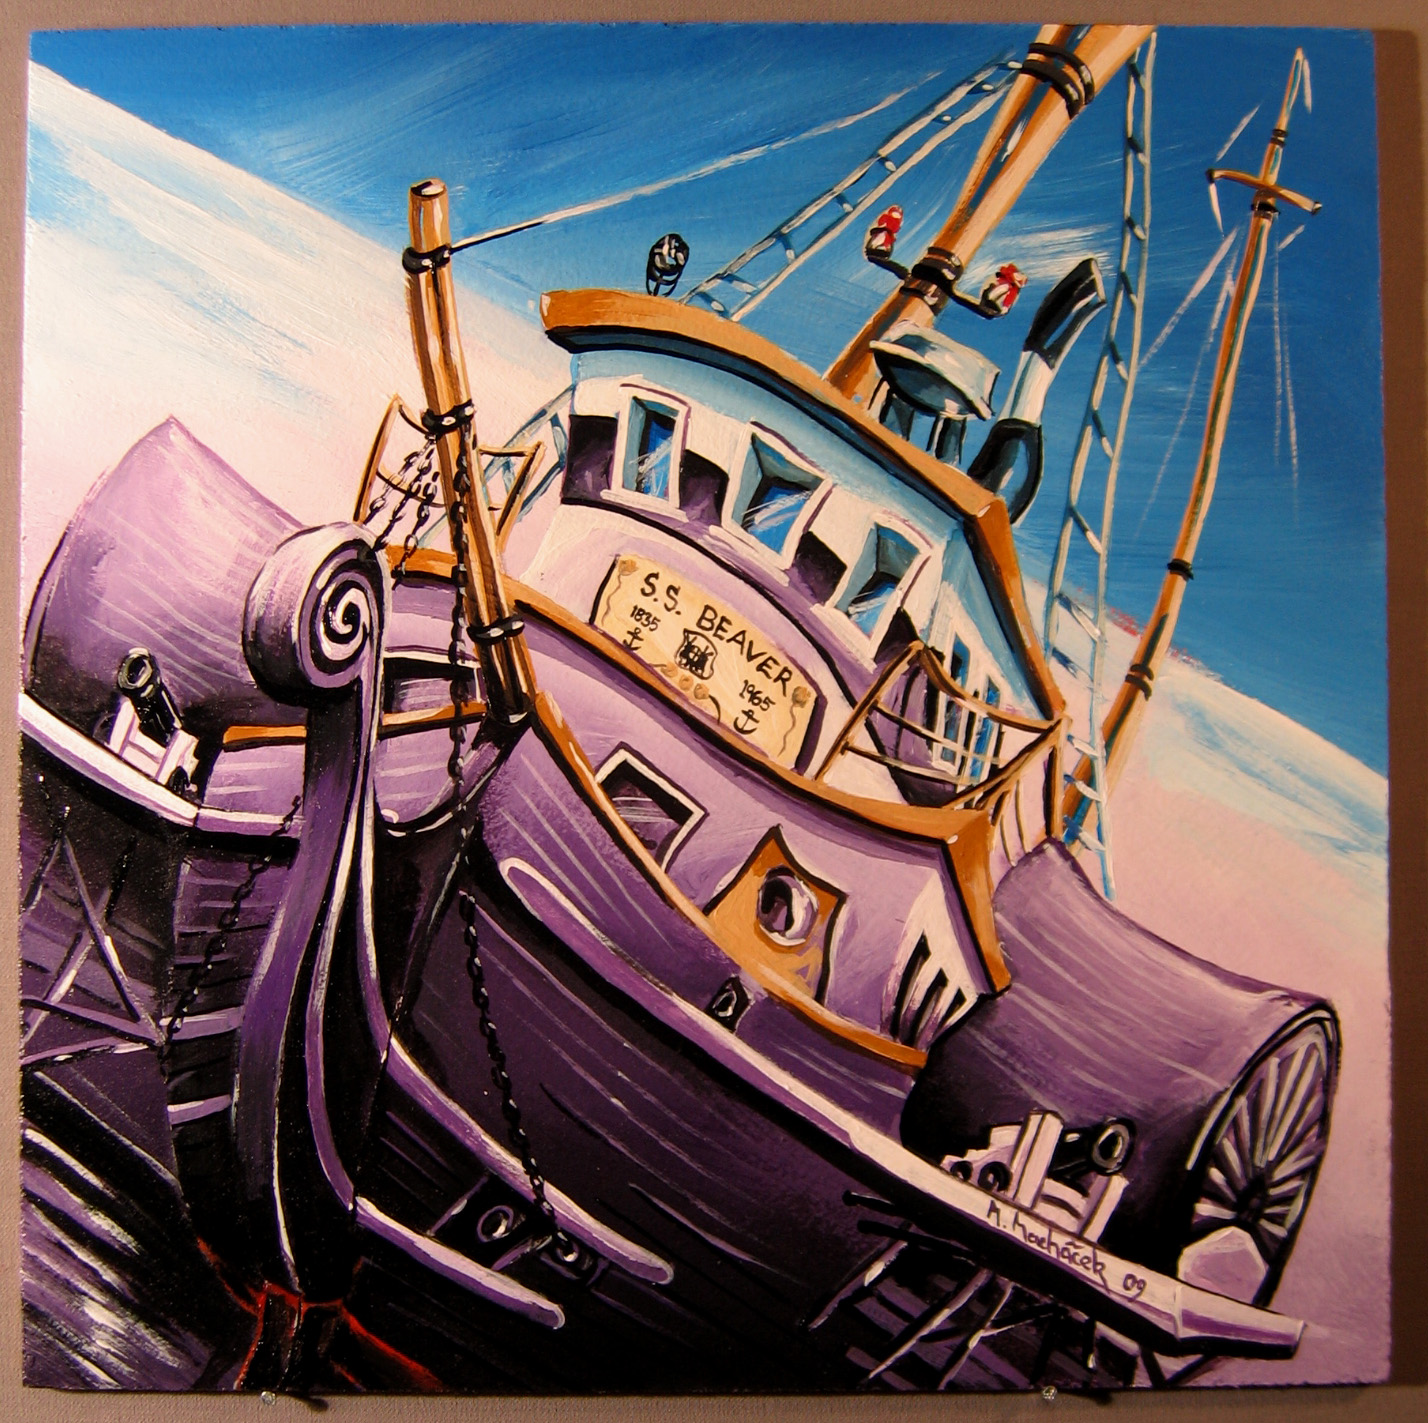 SS Beaver, completed panel of the Kunamokst Mural Mosaic.